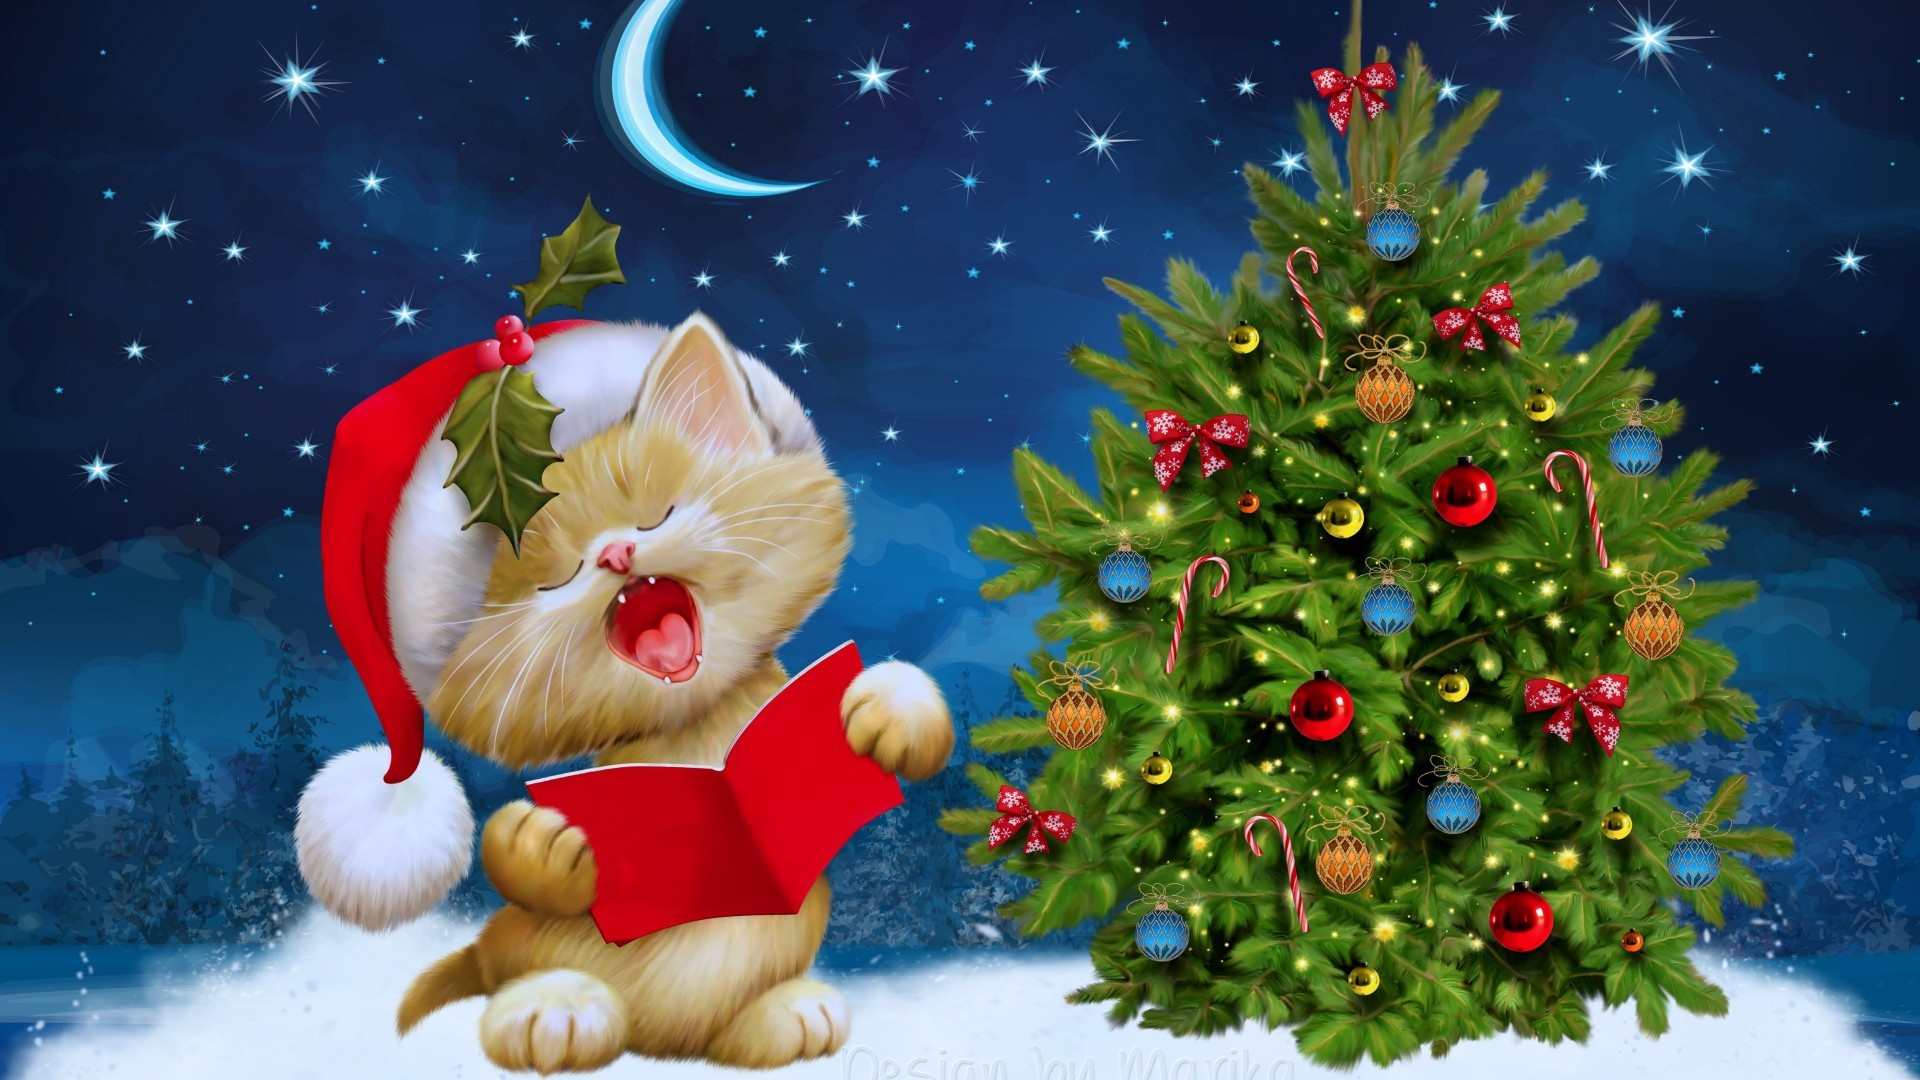 Download Santa Kitten Singing Christmas Carols Hd